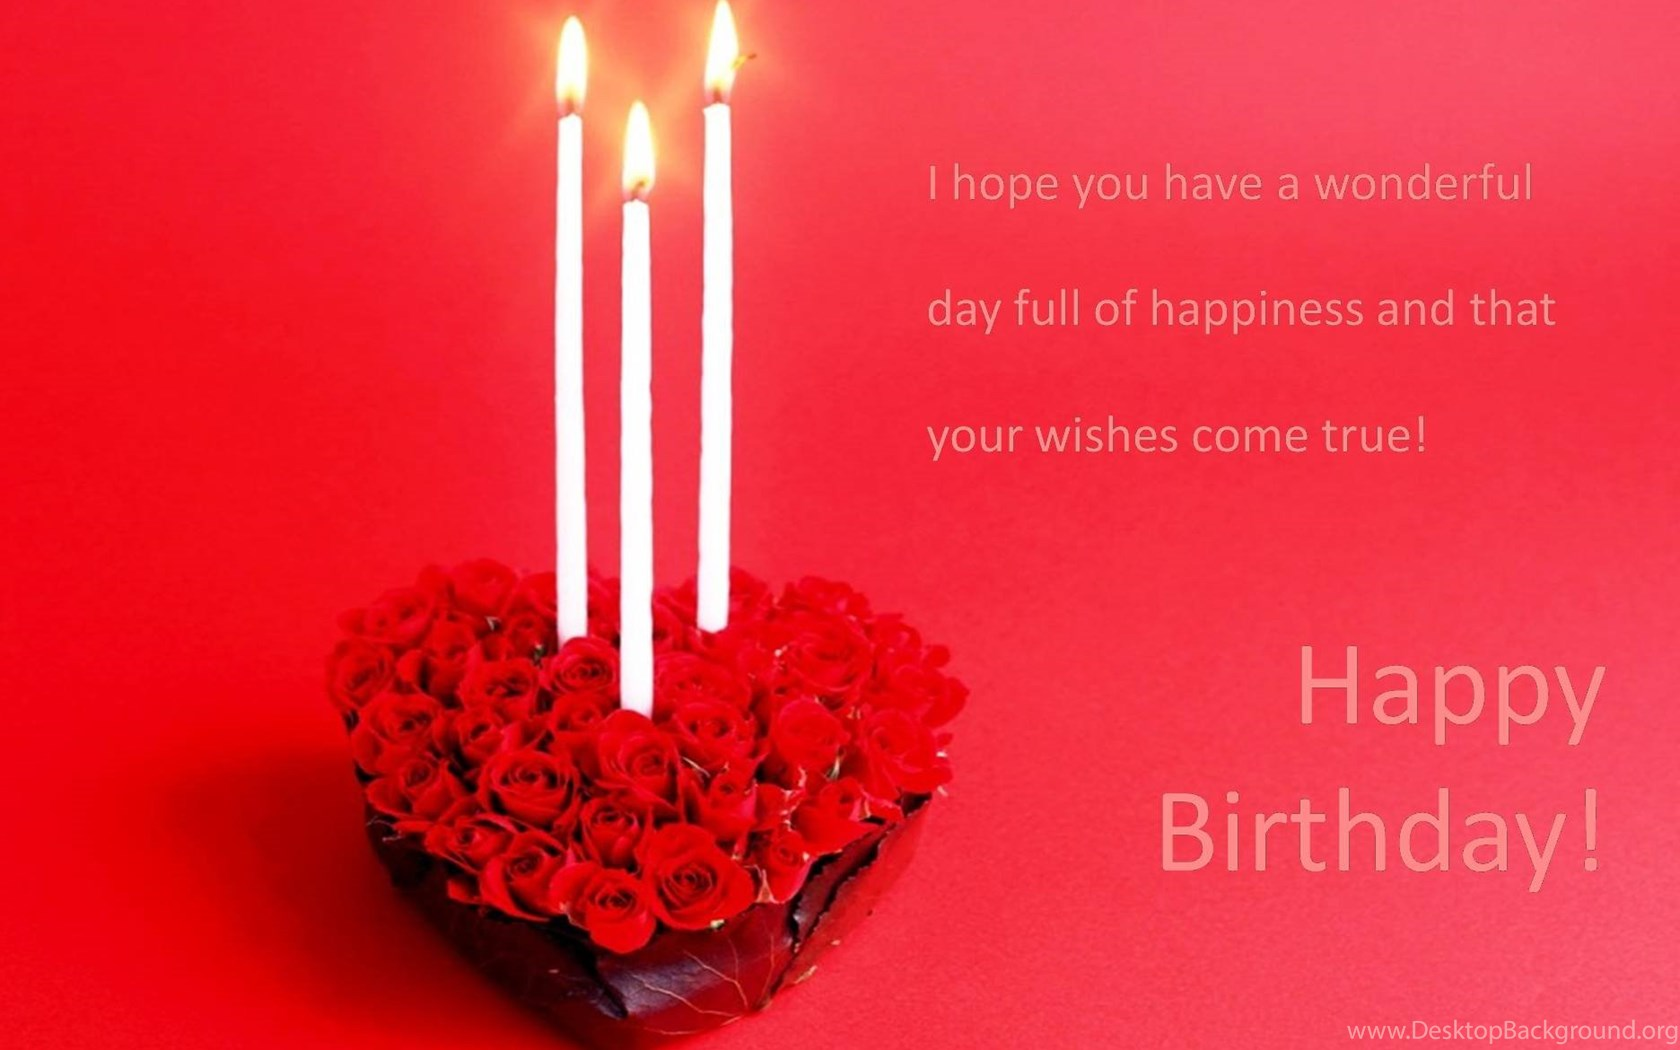 happy birthday love wallpapers free download desktop background